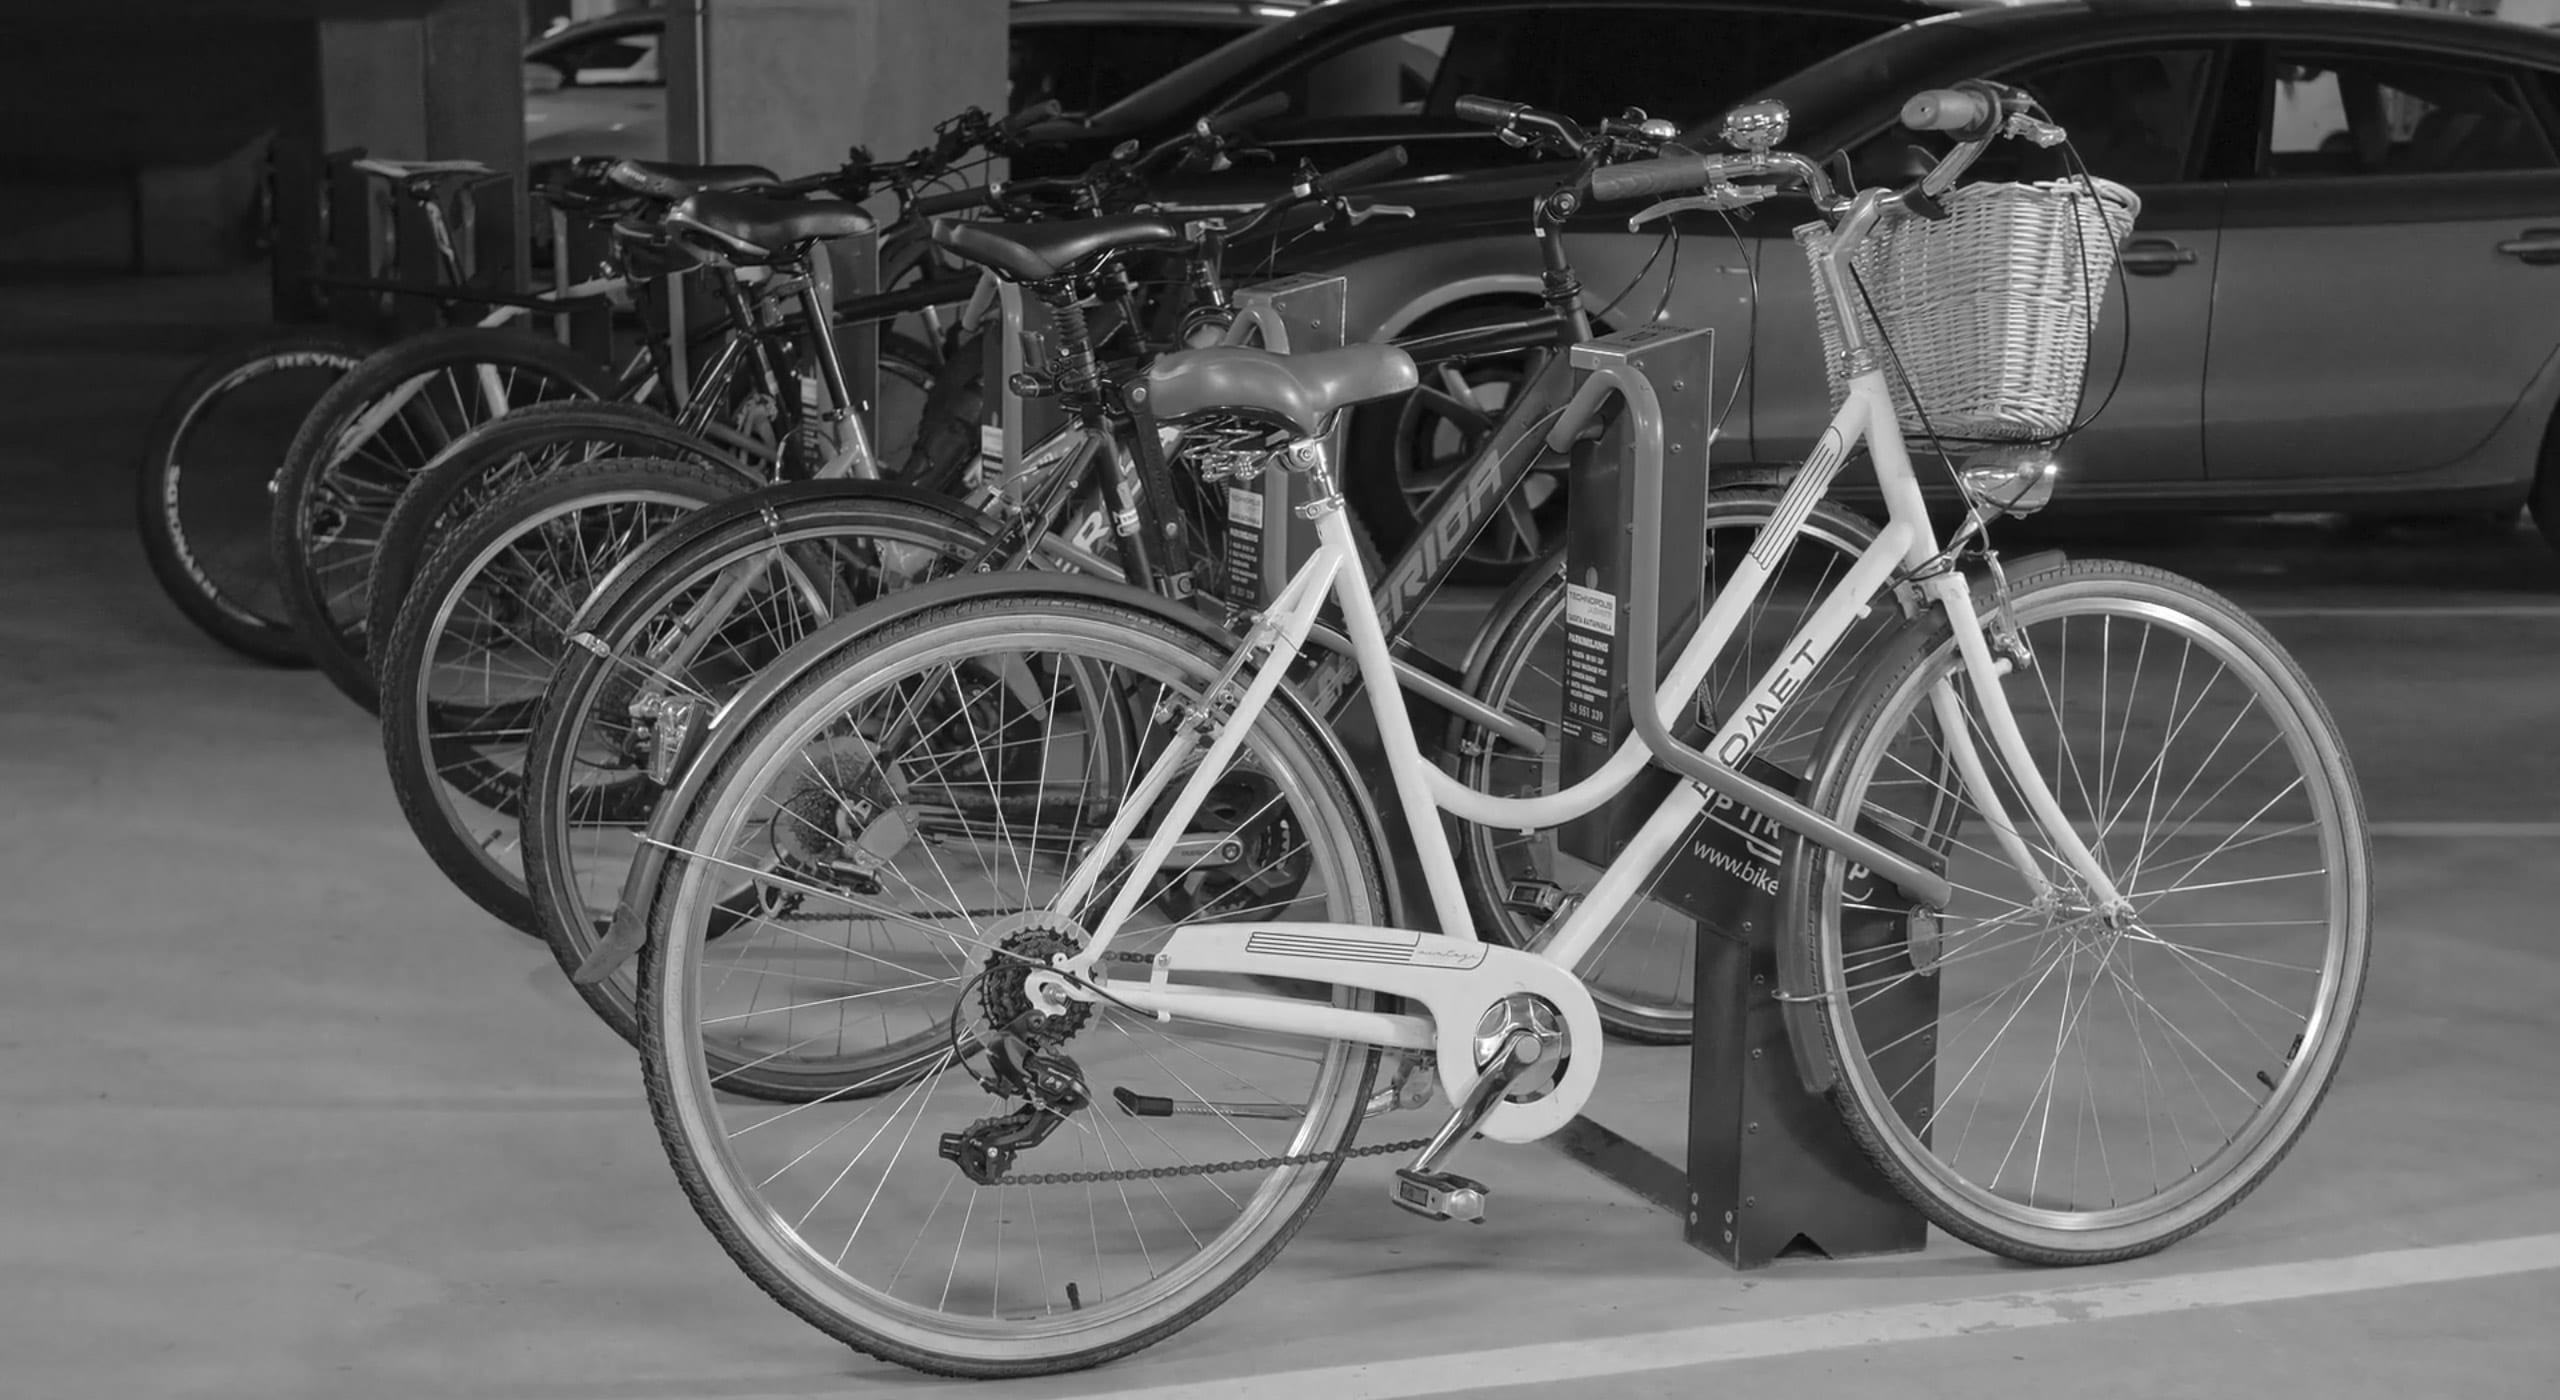 FABB covers the new bike parking option at Reston Town Center